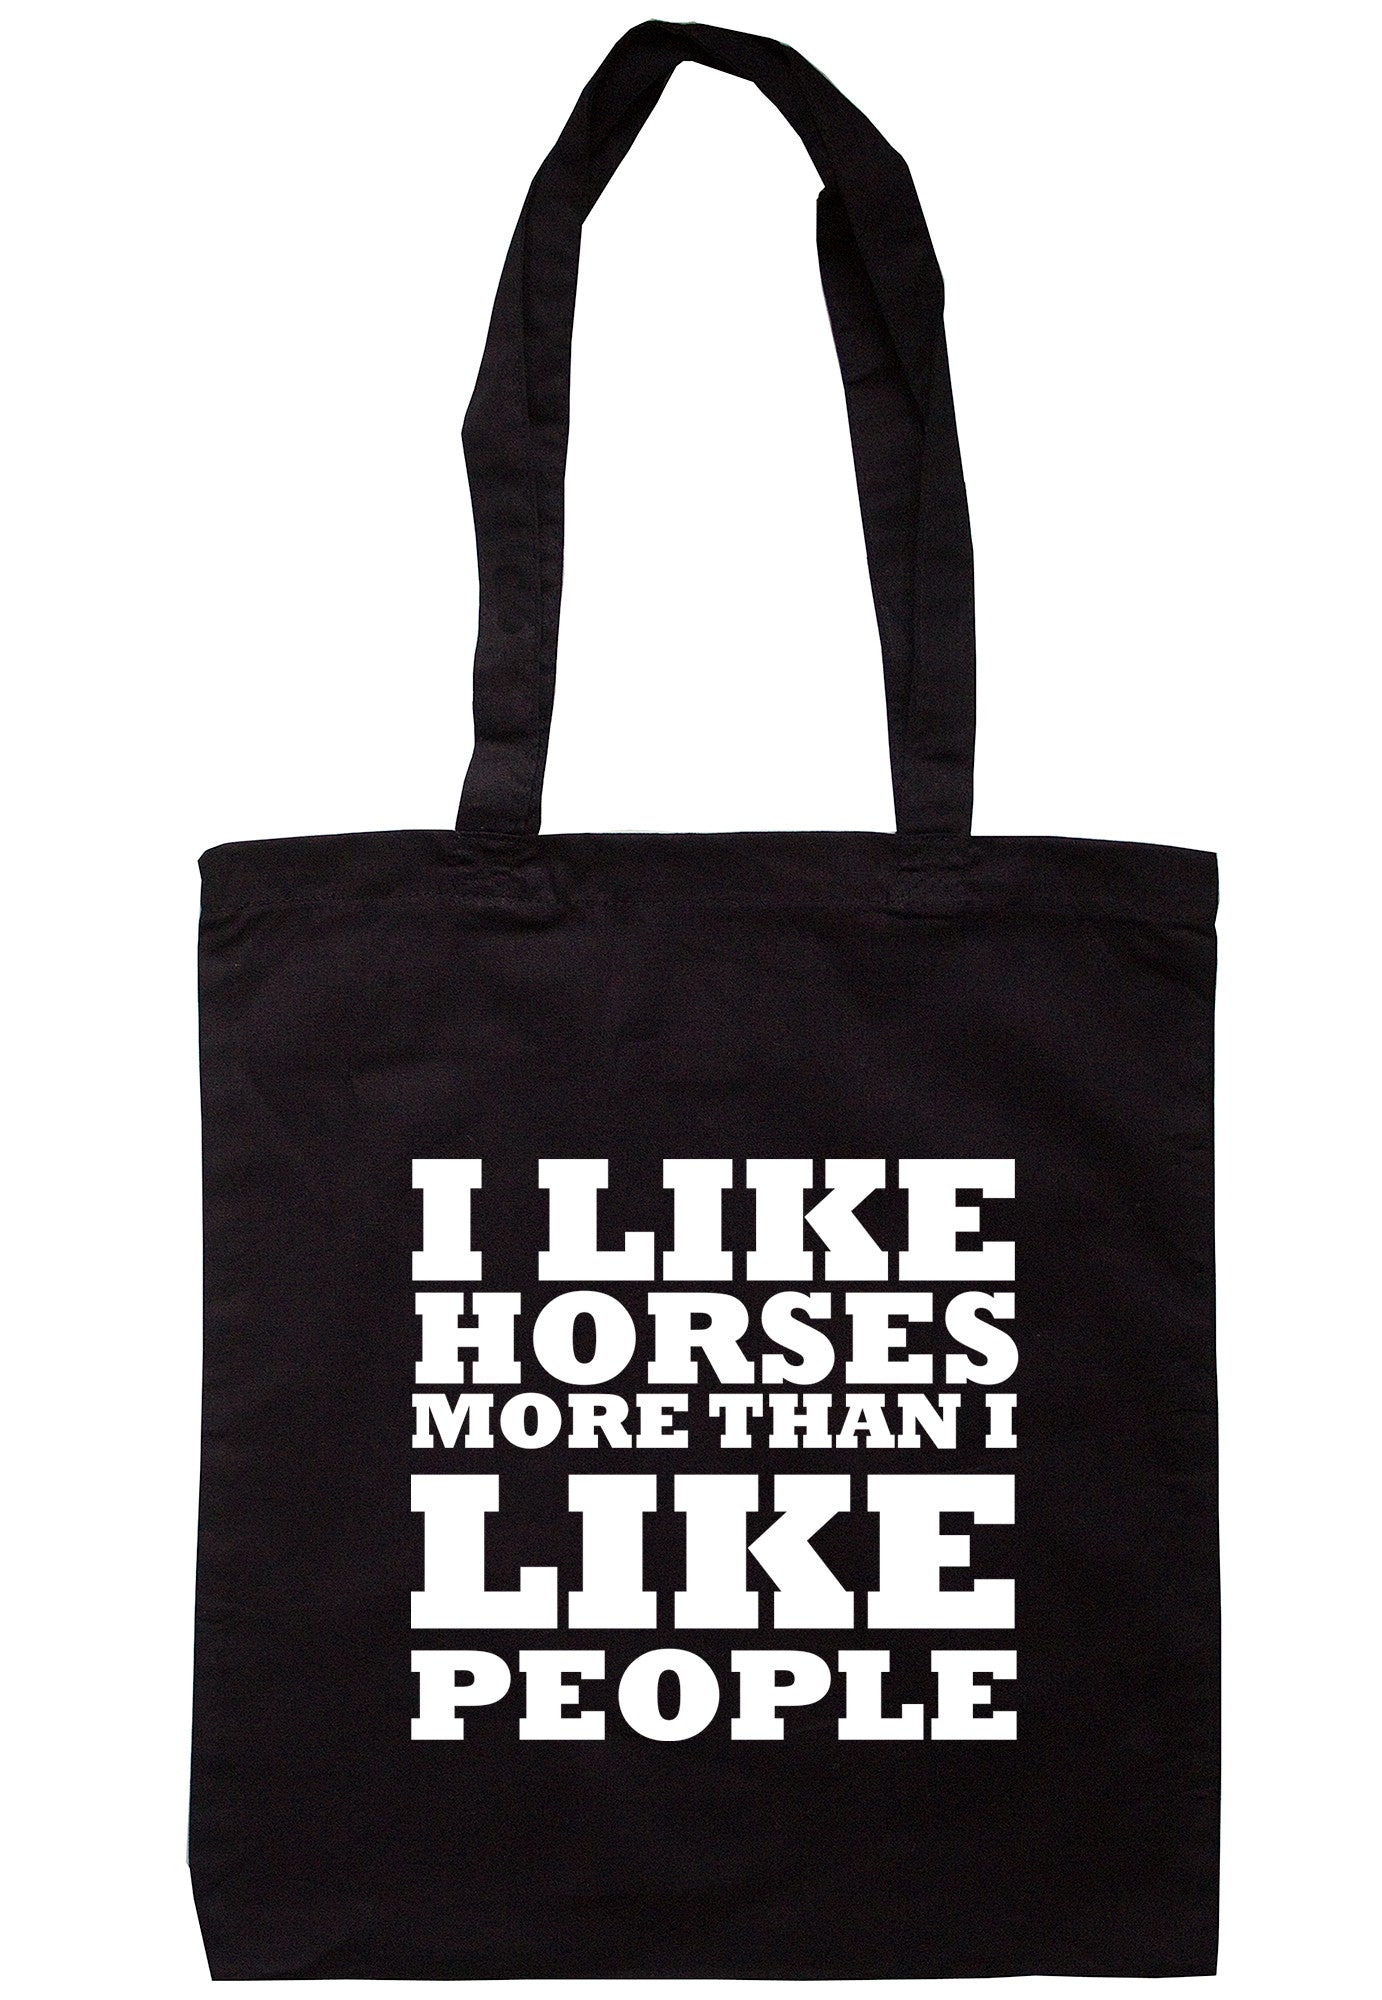 I Like Horses More Than I Like People Tote Bag TB0448 - Illustrated Identity Ltd.